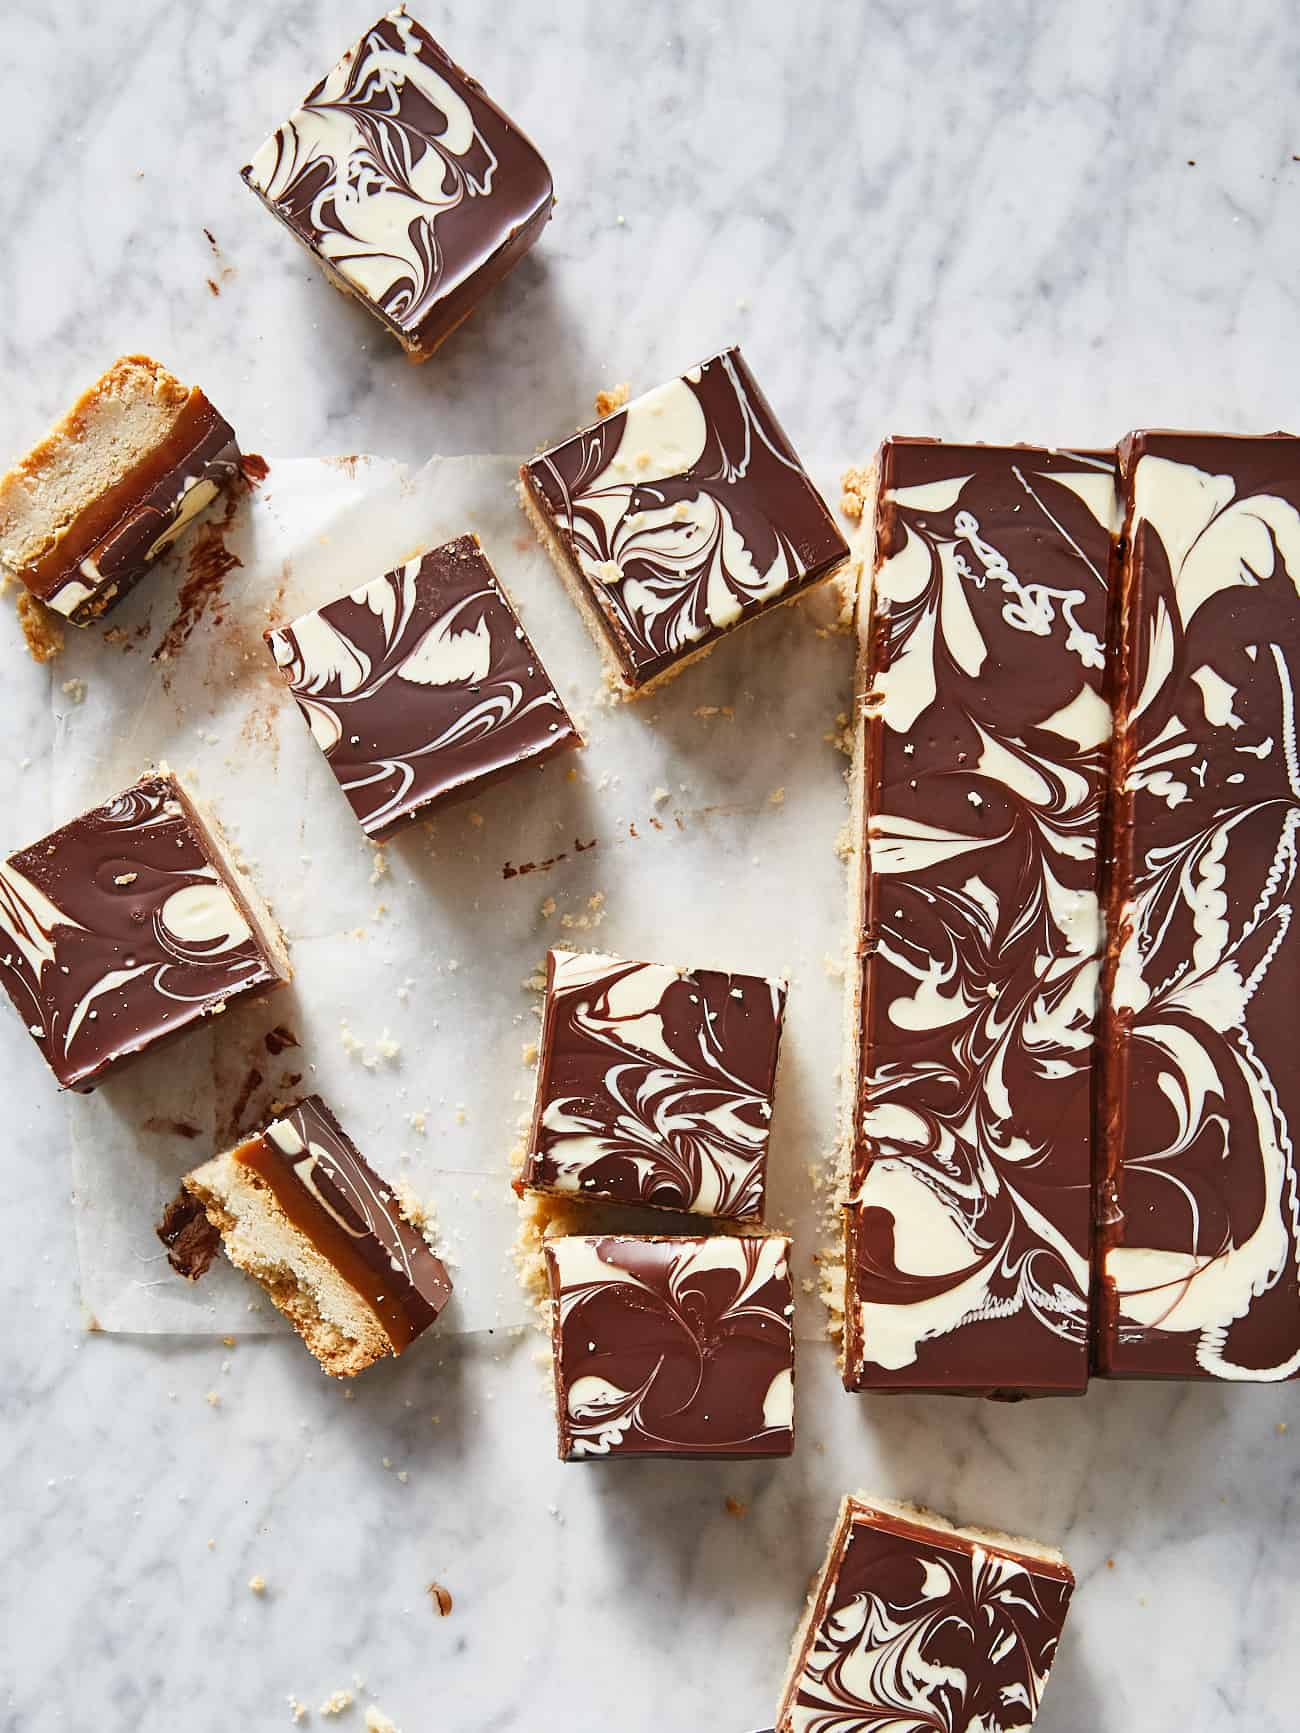 overhead shot of squares of millionaire's shortbread with marbled chocolate